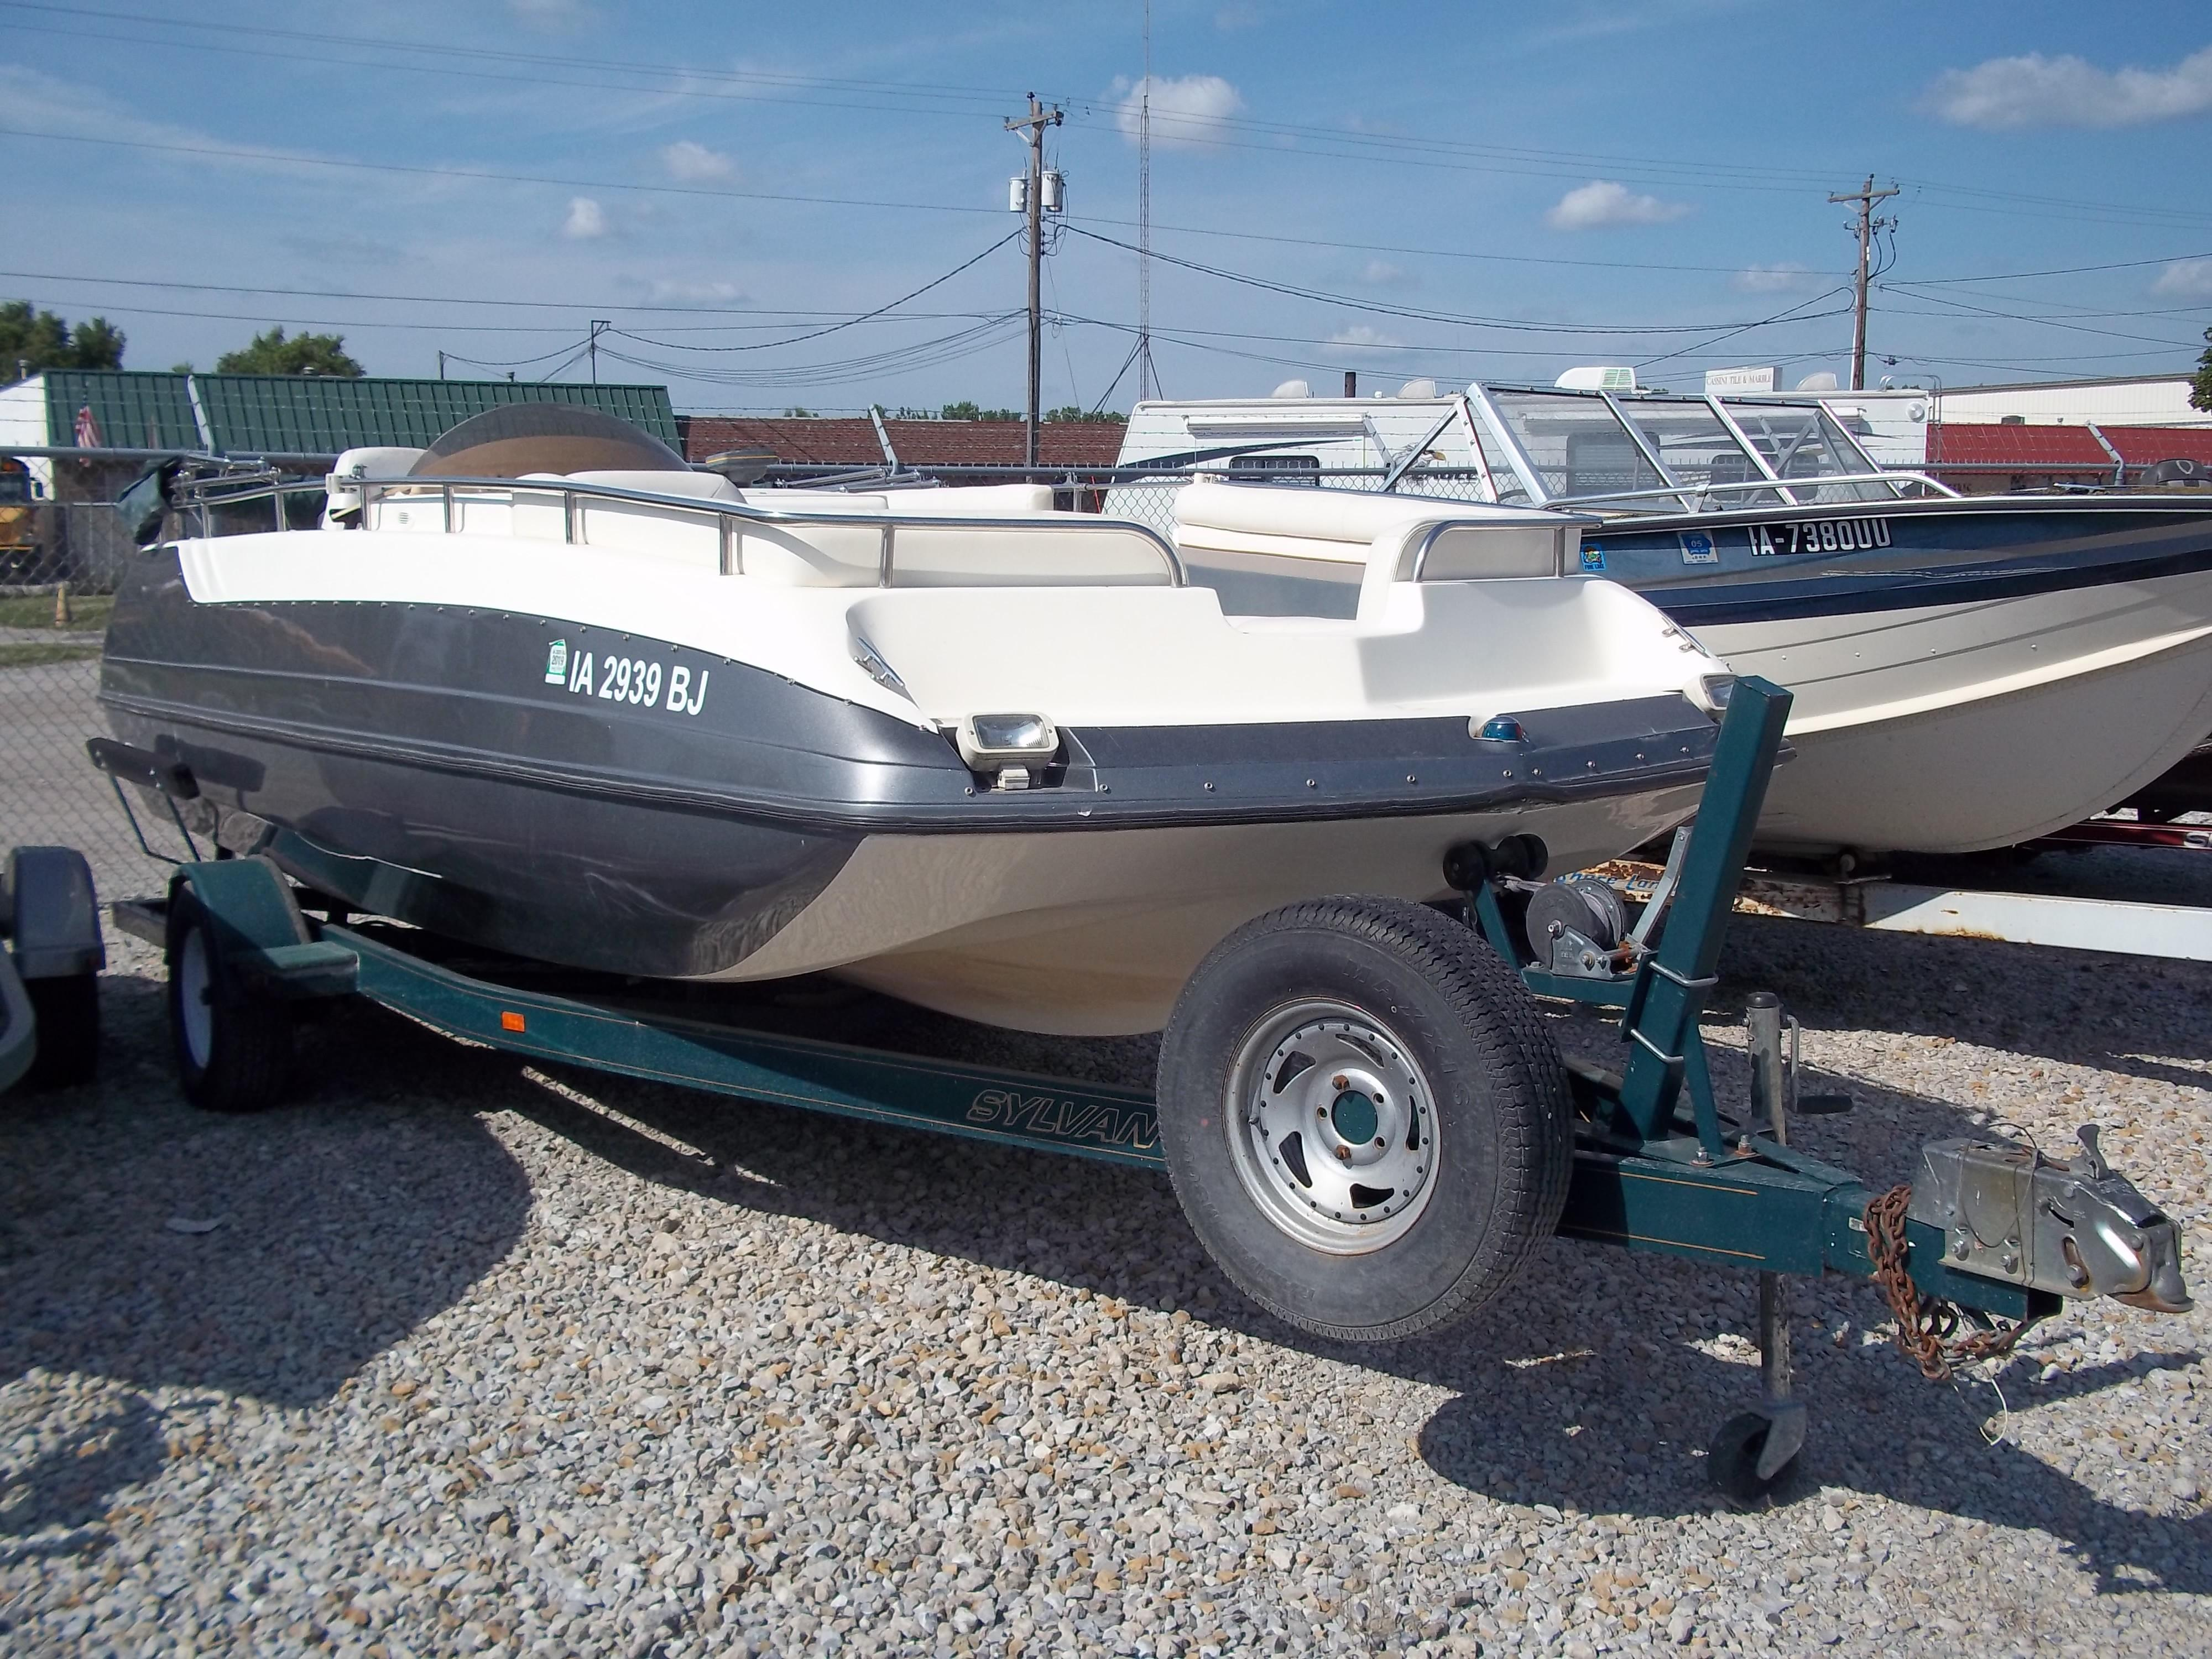 BoatTEST com - Used Boats, New Boats For sale / Sell your